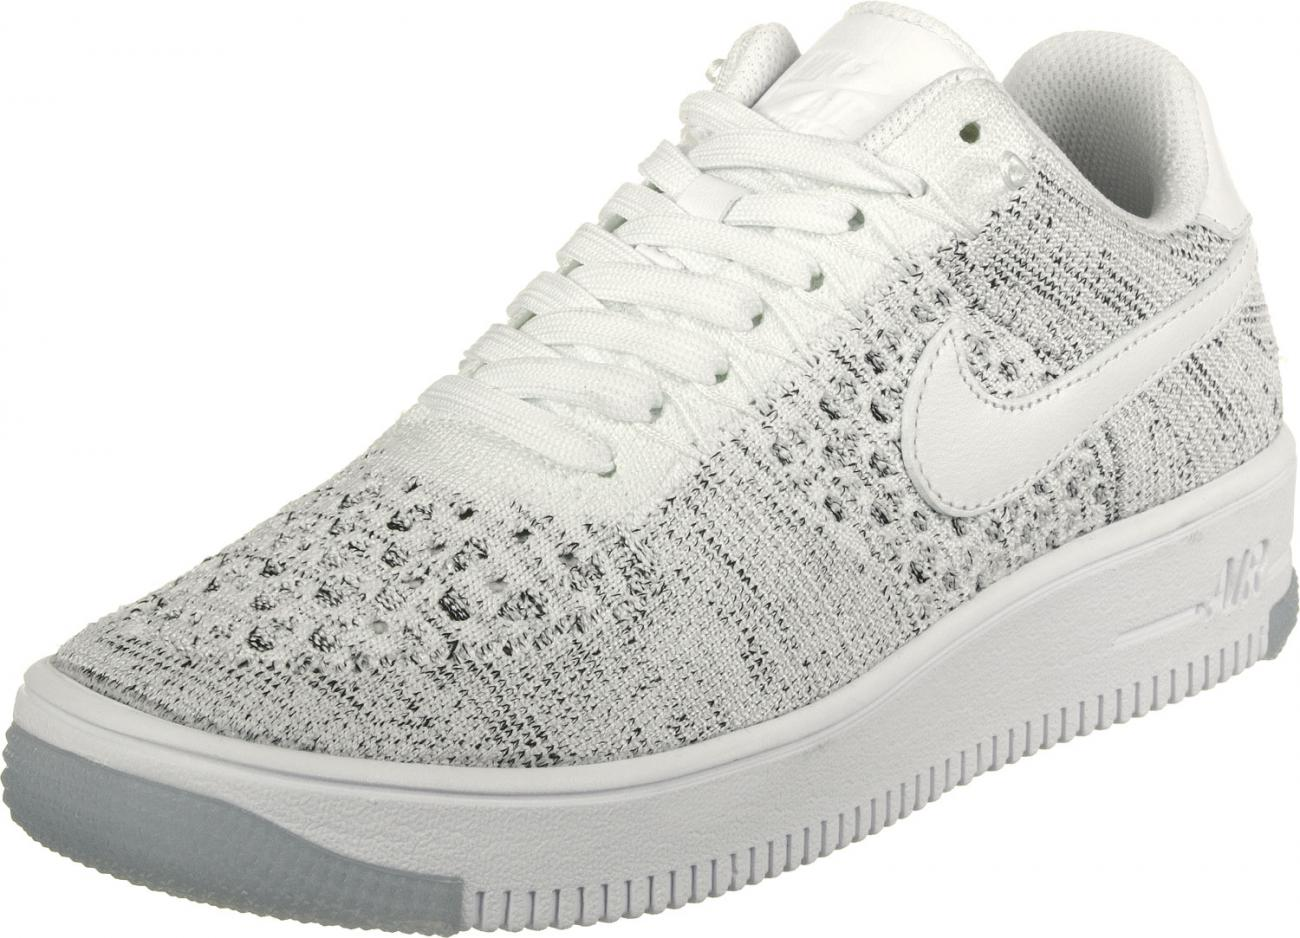 air force 1 grise femme